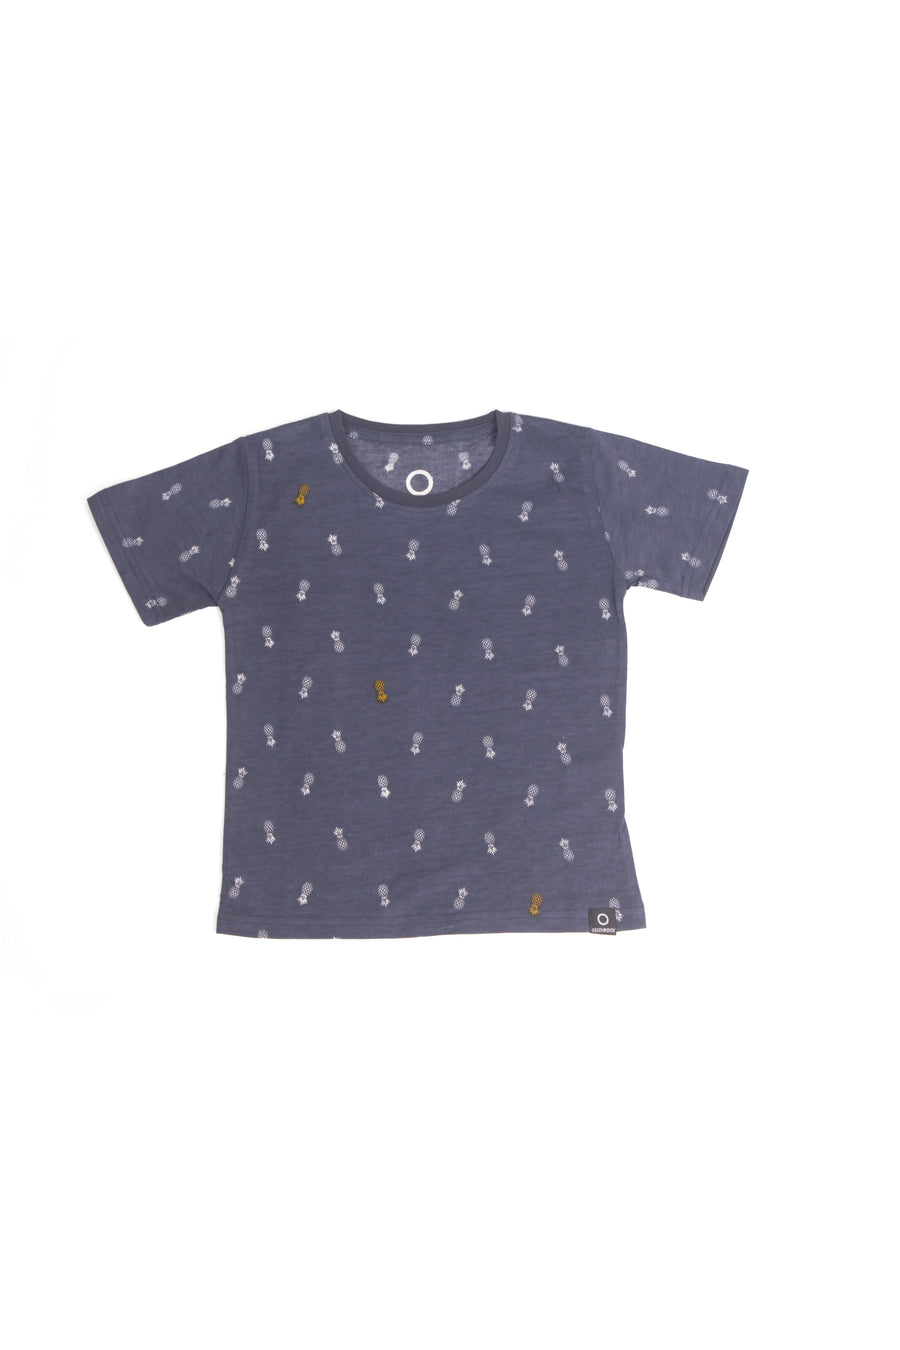 T-Shirt Kids Pineapple Navy